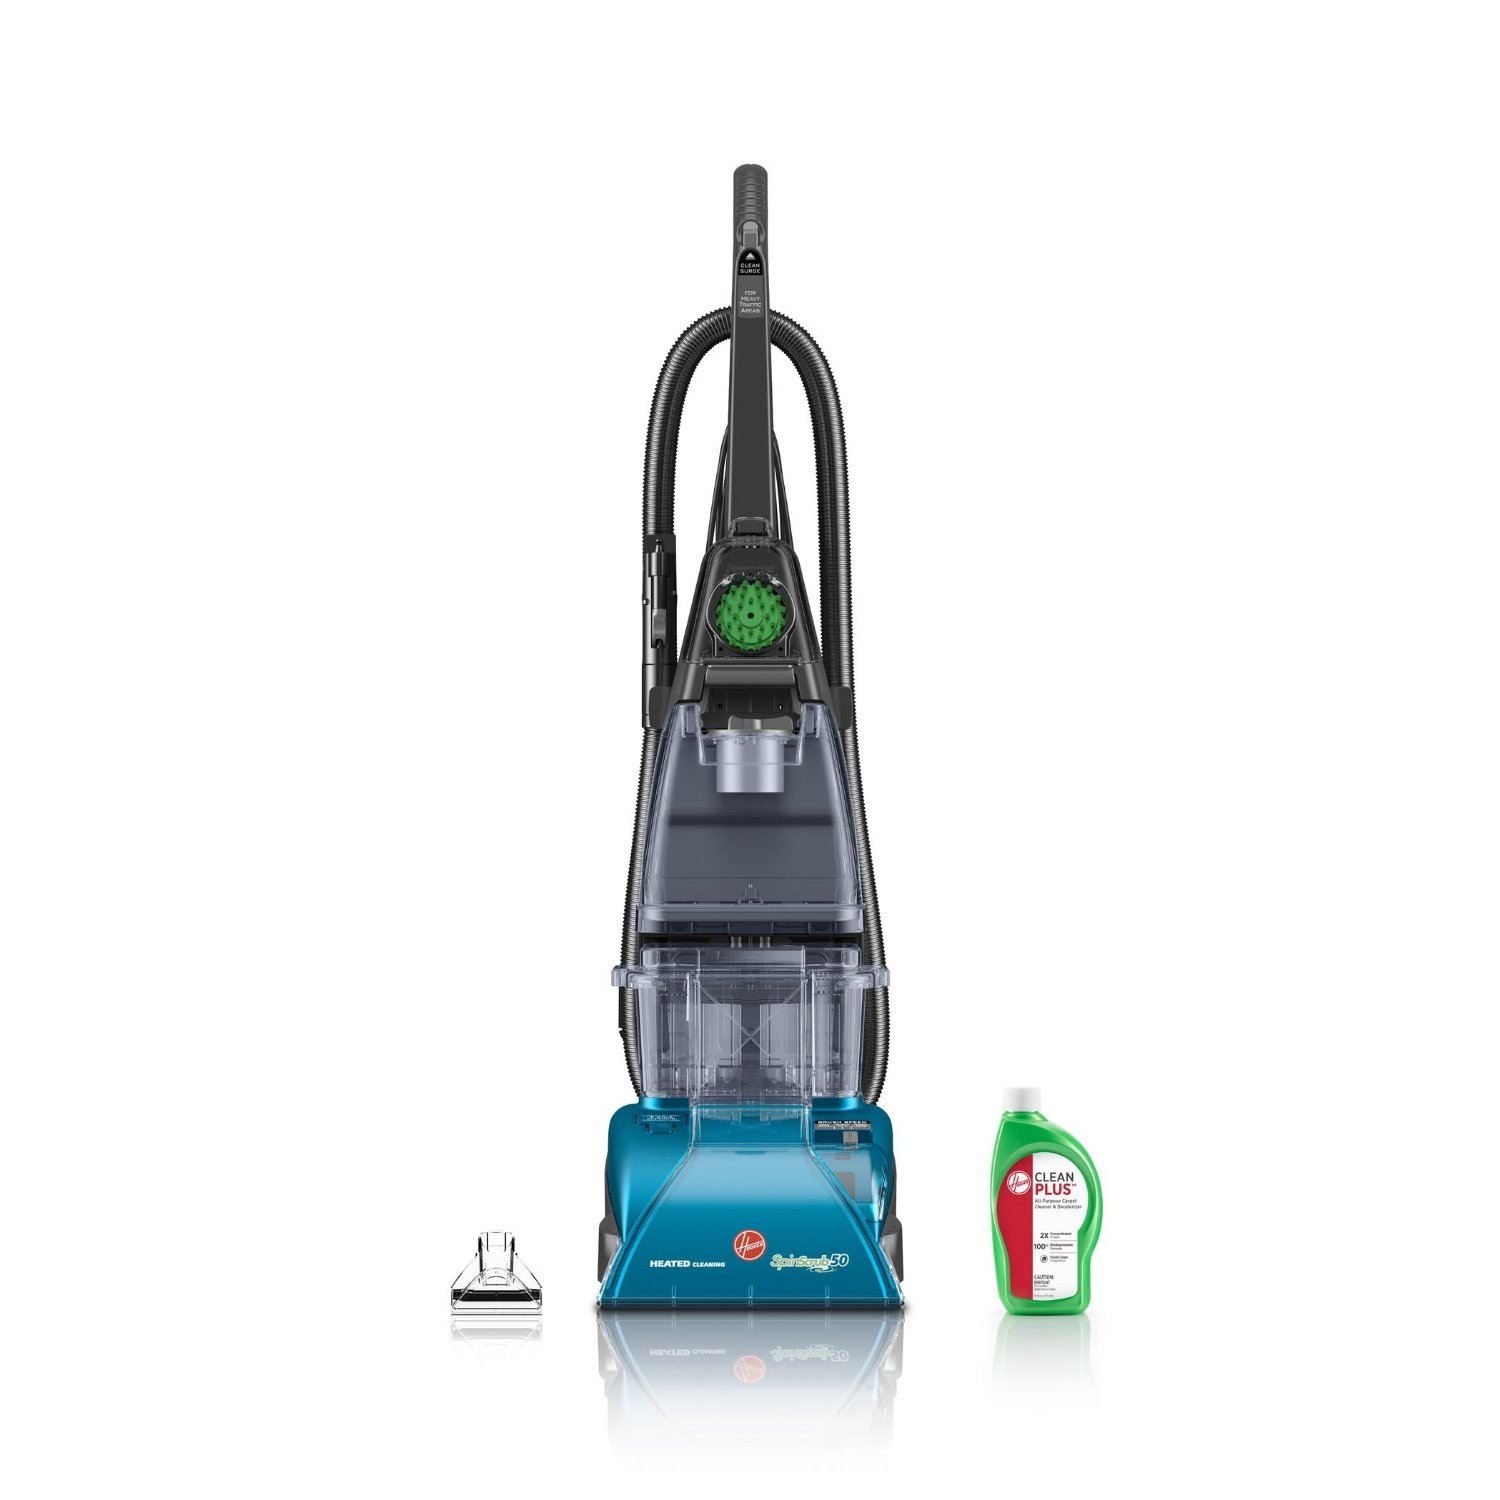 Best Carpet Cleaning Machine This Is My First Post On My